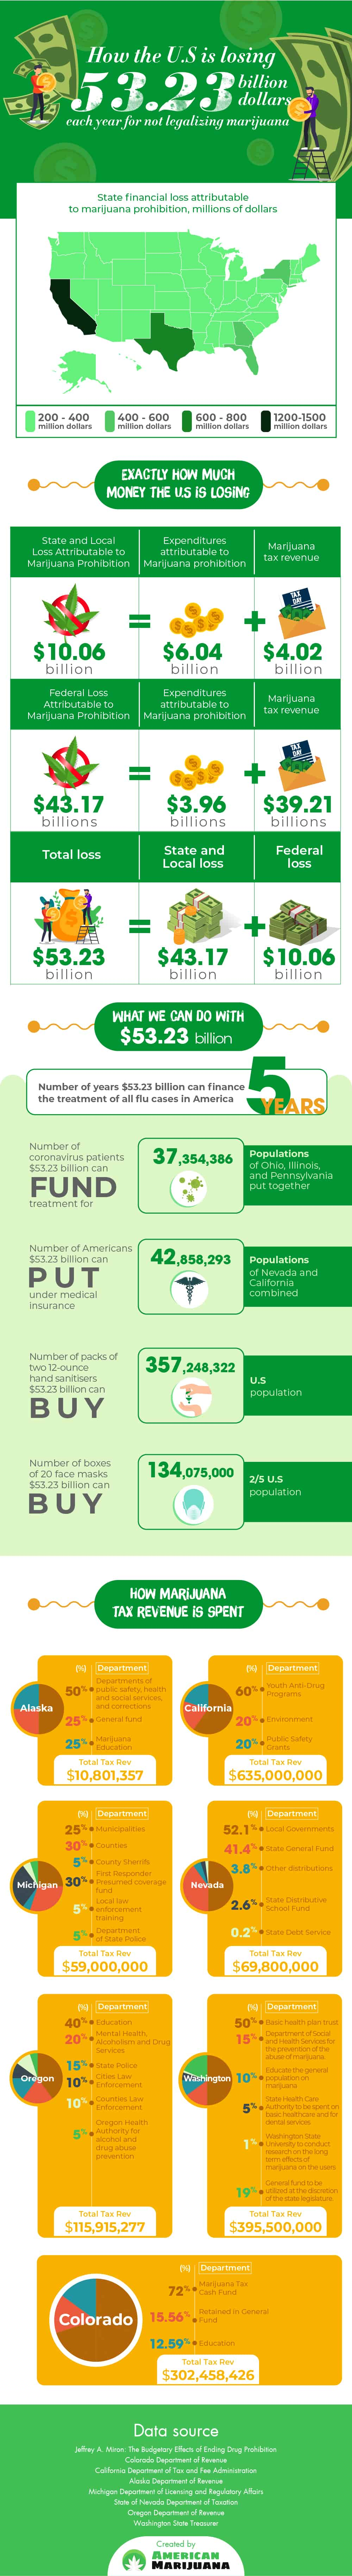 how-the-us-is-losing-53-billion-for-not-legalizing-marijuana-infographic